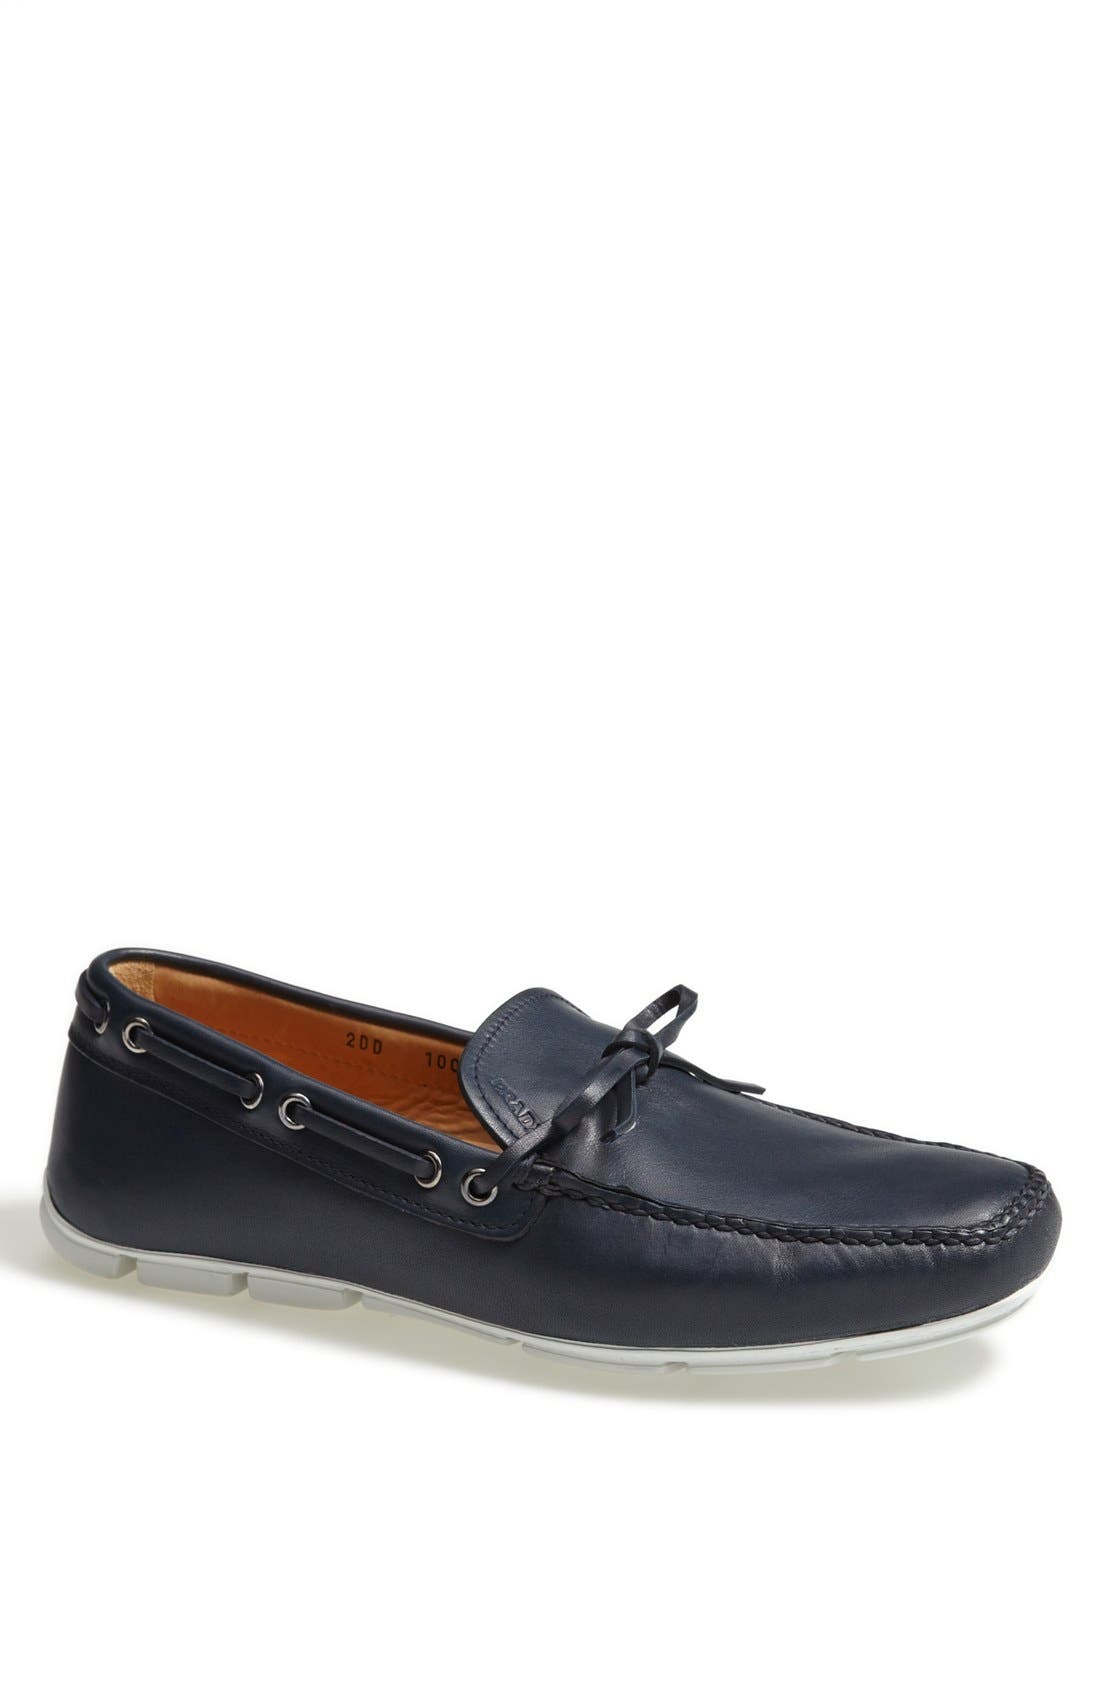 Alternate Image 1 Selected - Prada Leather Driving Shoe